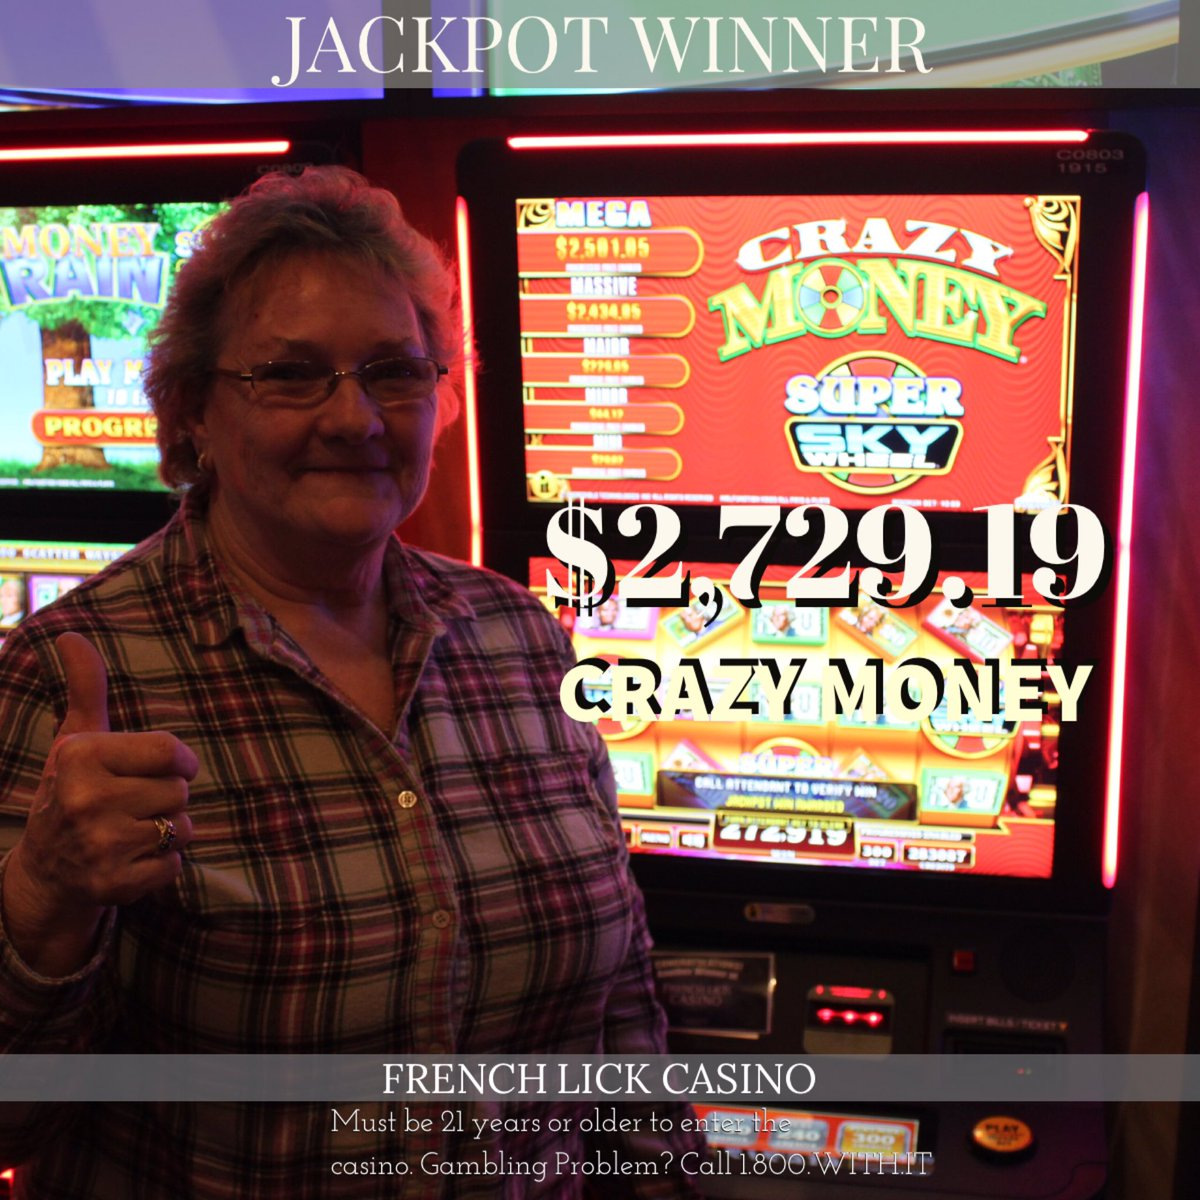 French lick online casino